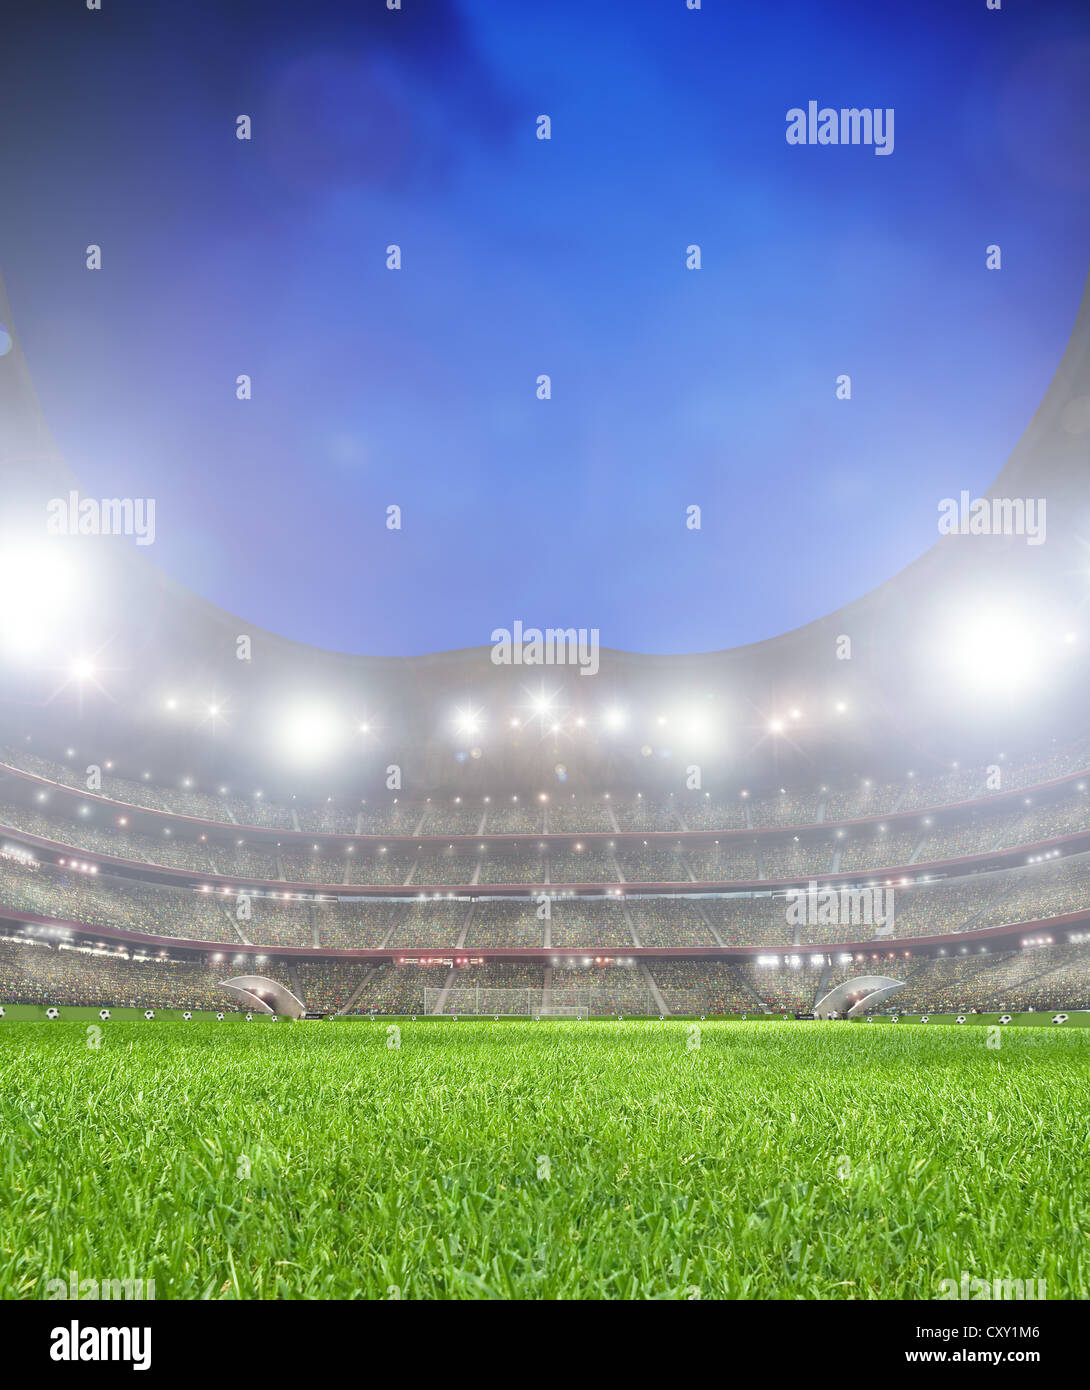 Grass in a football stadium with spectator stands, illustration - Stock Image